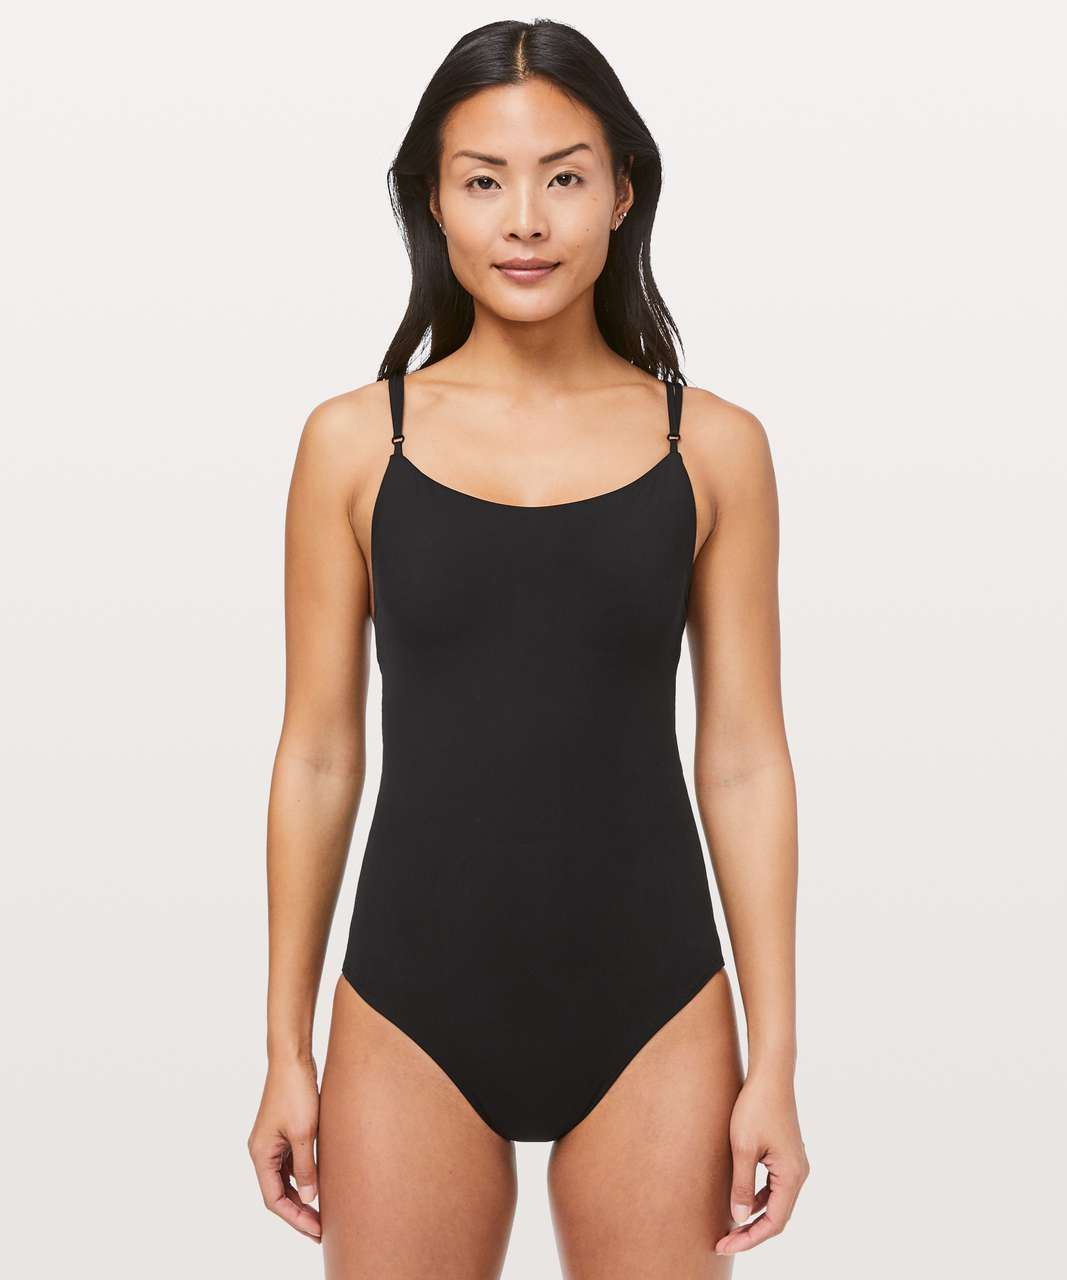 Lululemon Coastline One Piece - Black